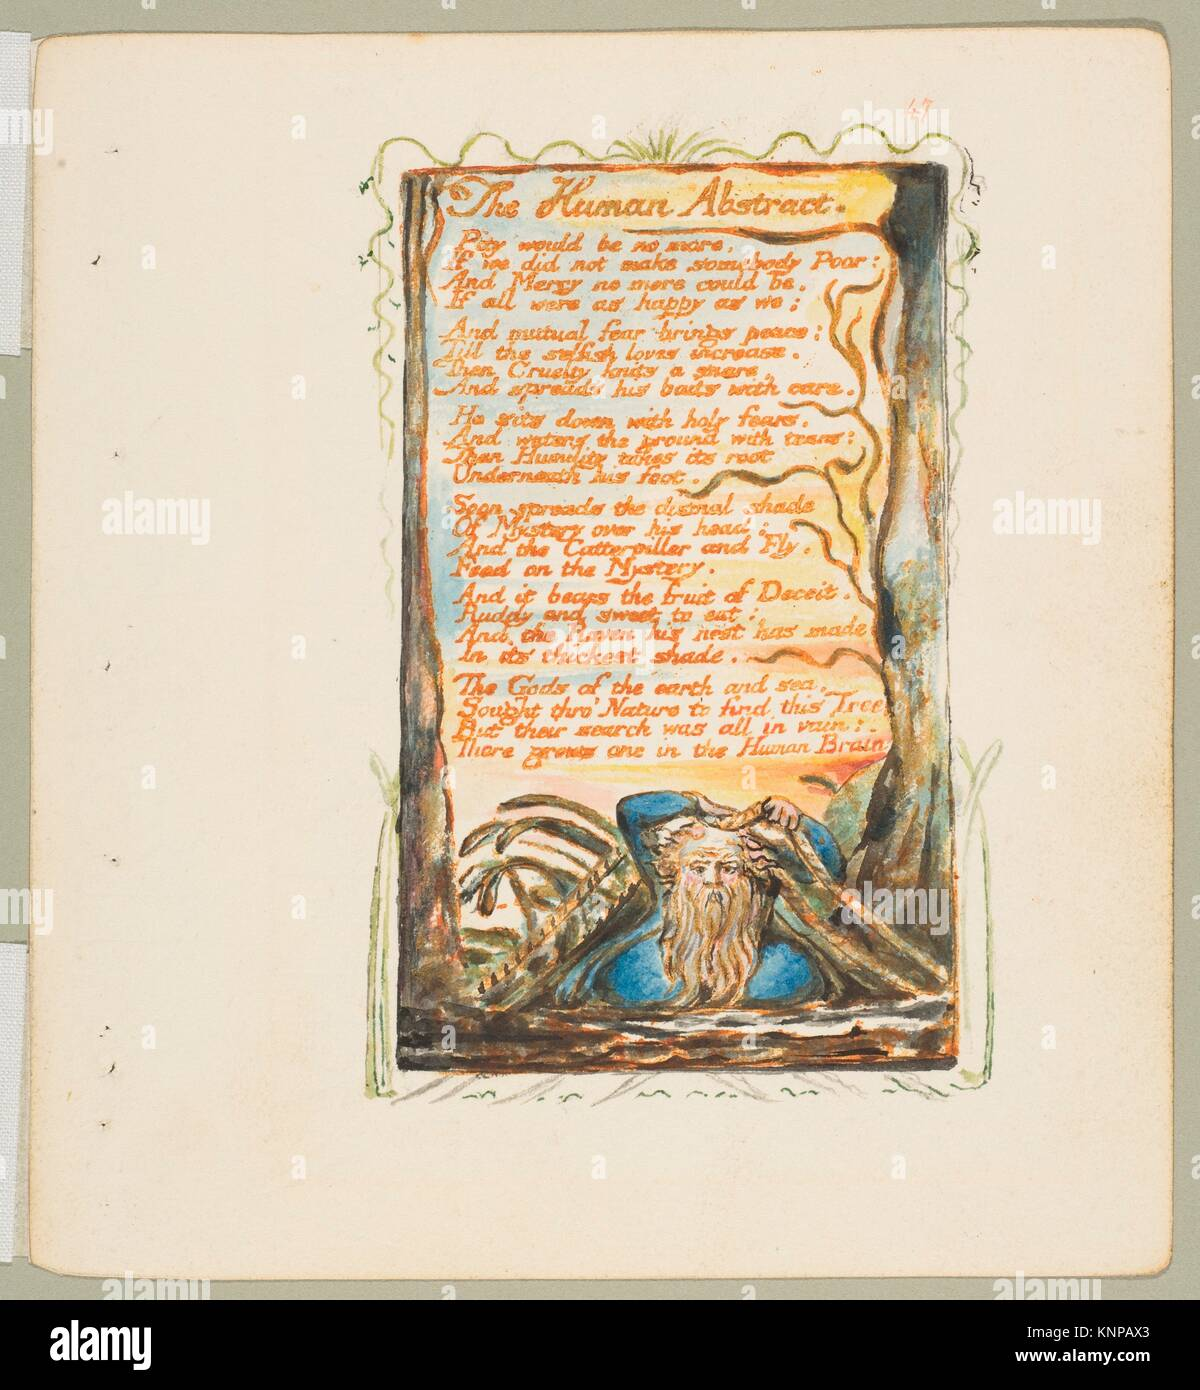 Songs Of Innocence And Of Experience The Human Abstract Artist